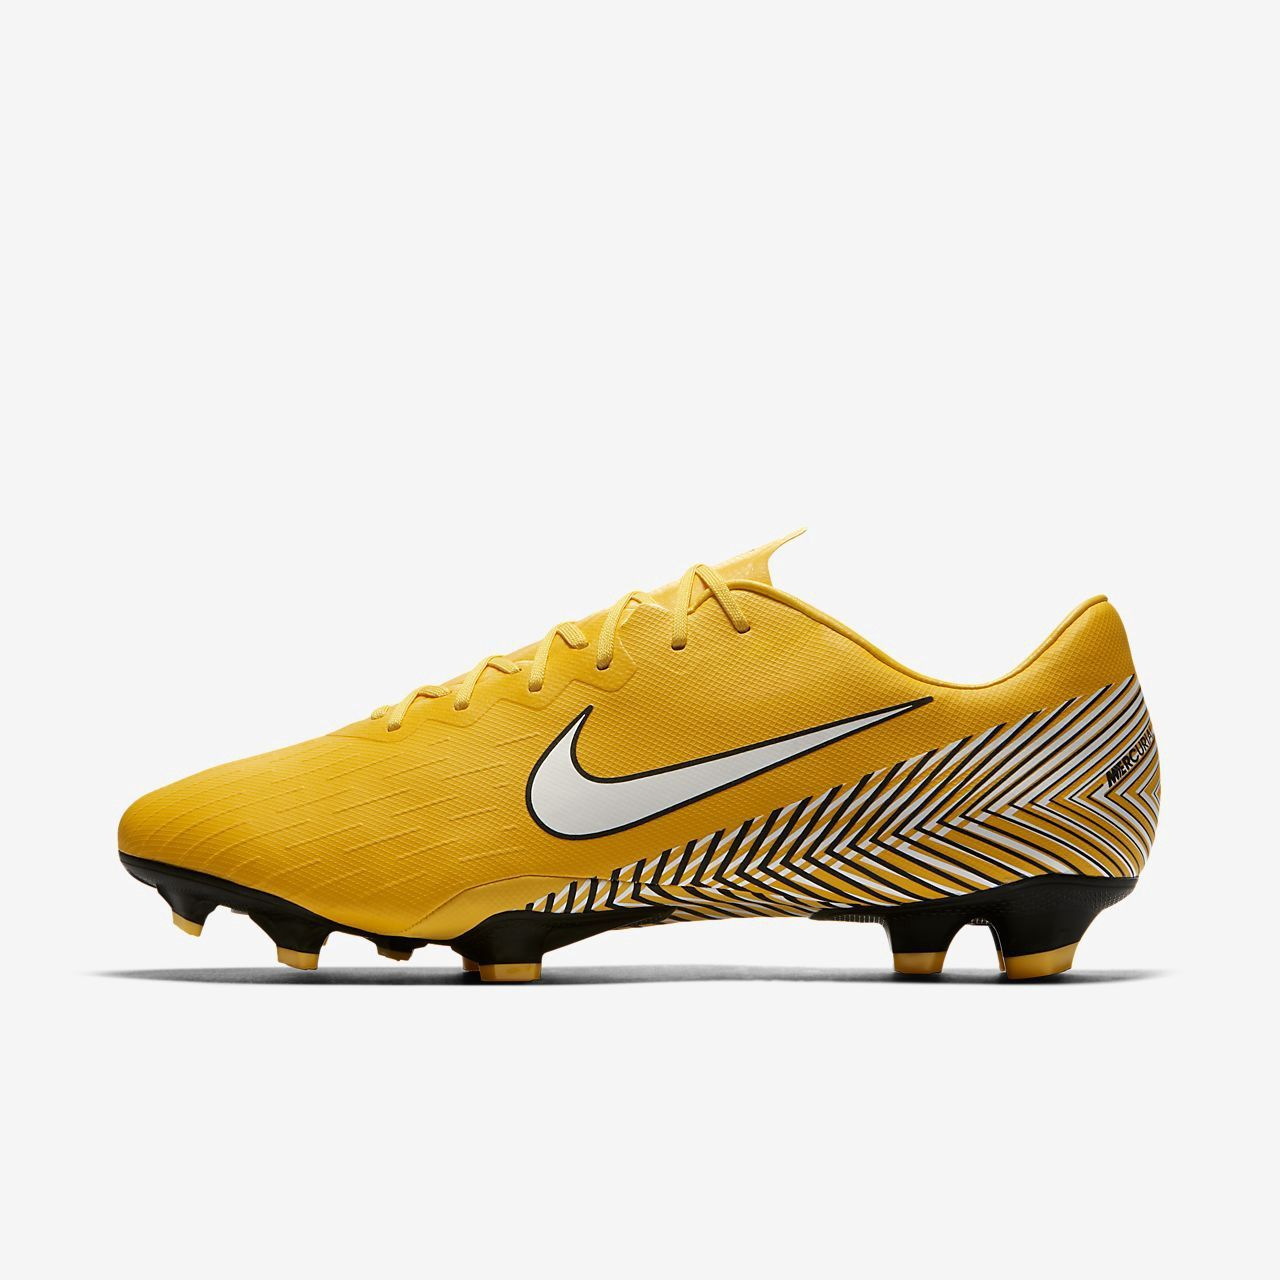 b91ebc7a83a Nike Mercurial Vapor Xii Pro Neymar Jr Men s Firm-Ground Soccer Cleat - M  13   W 14.5